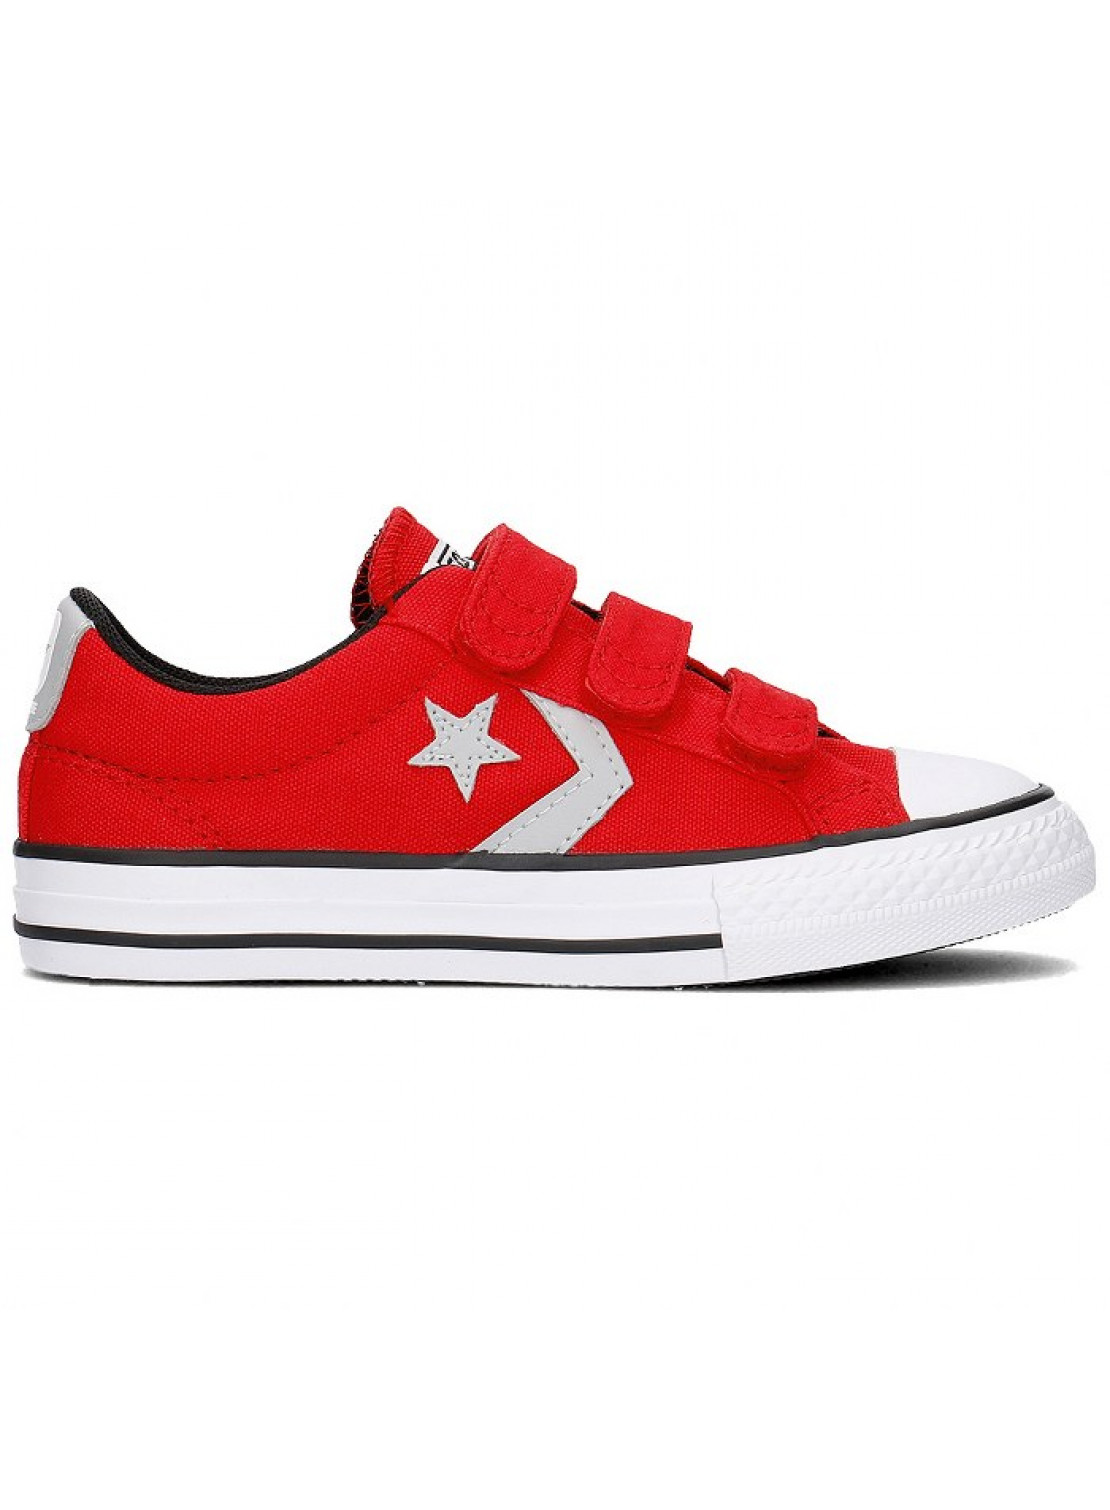 all star converse plataforma niña